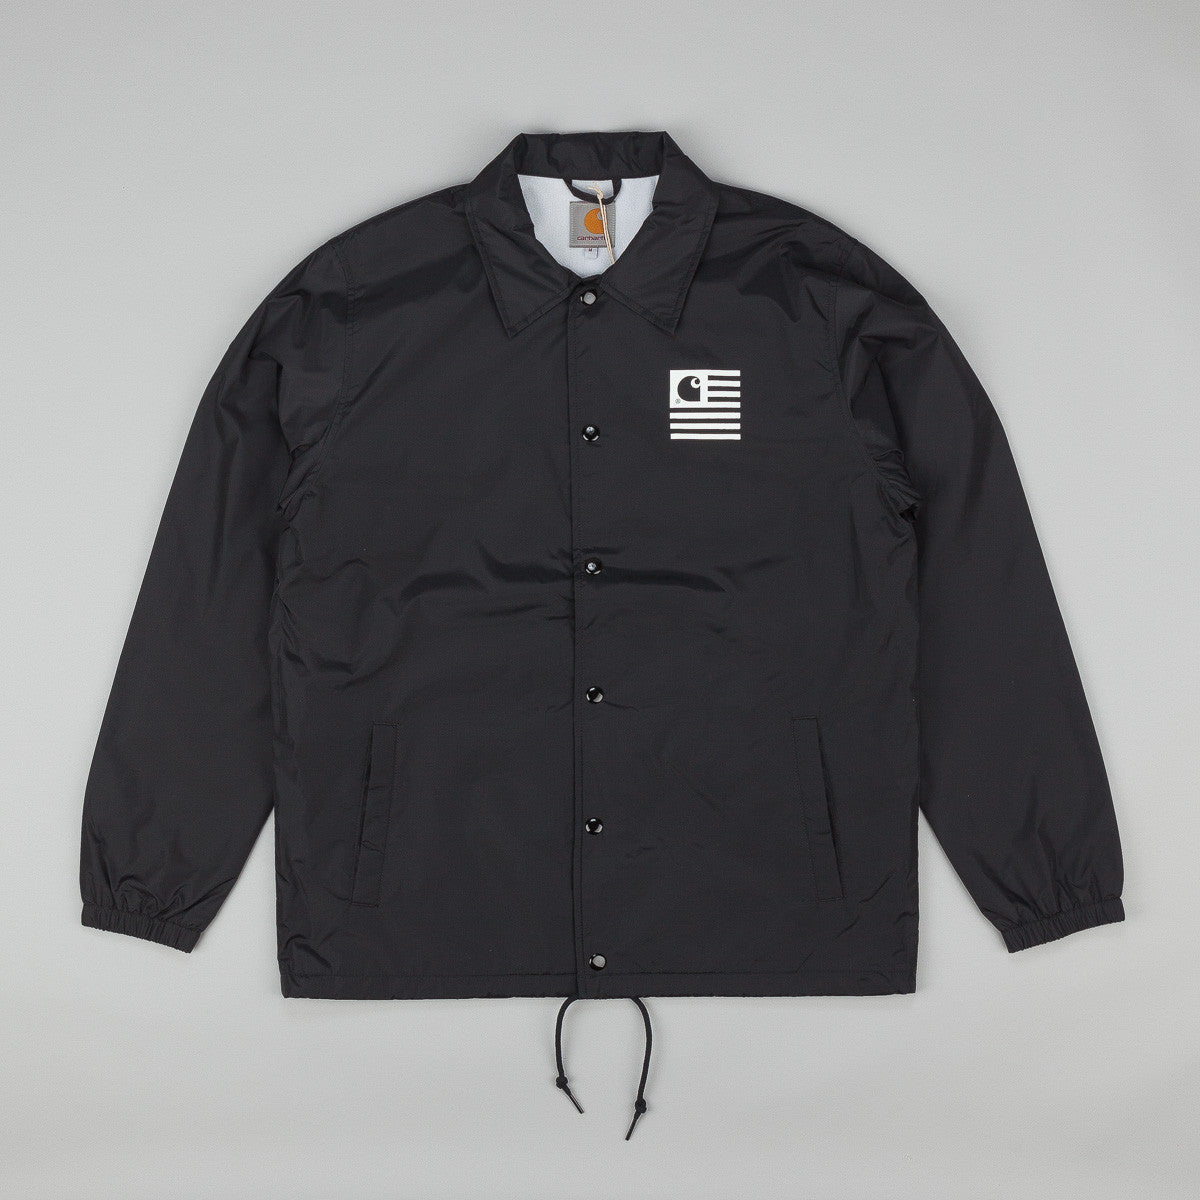 Carhartt State Coach Jacket